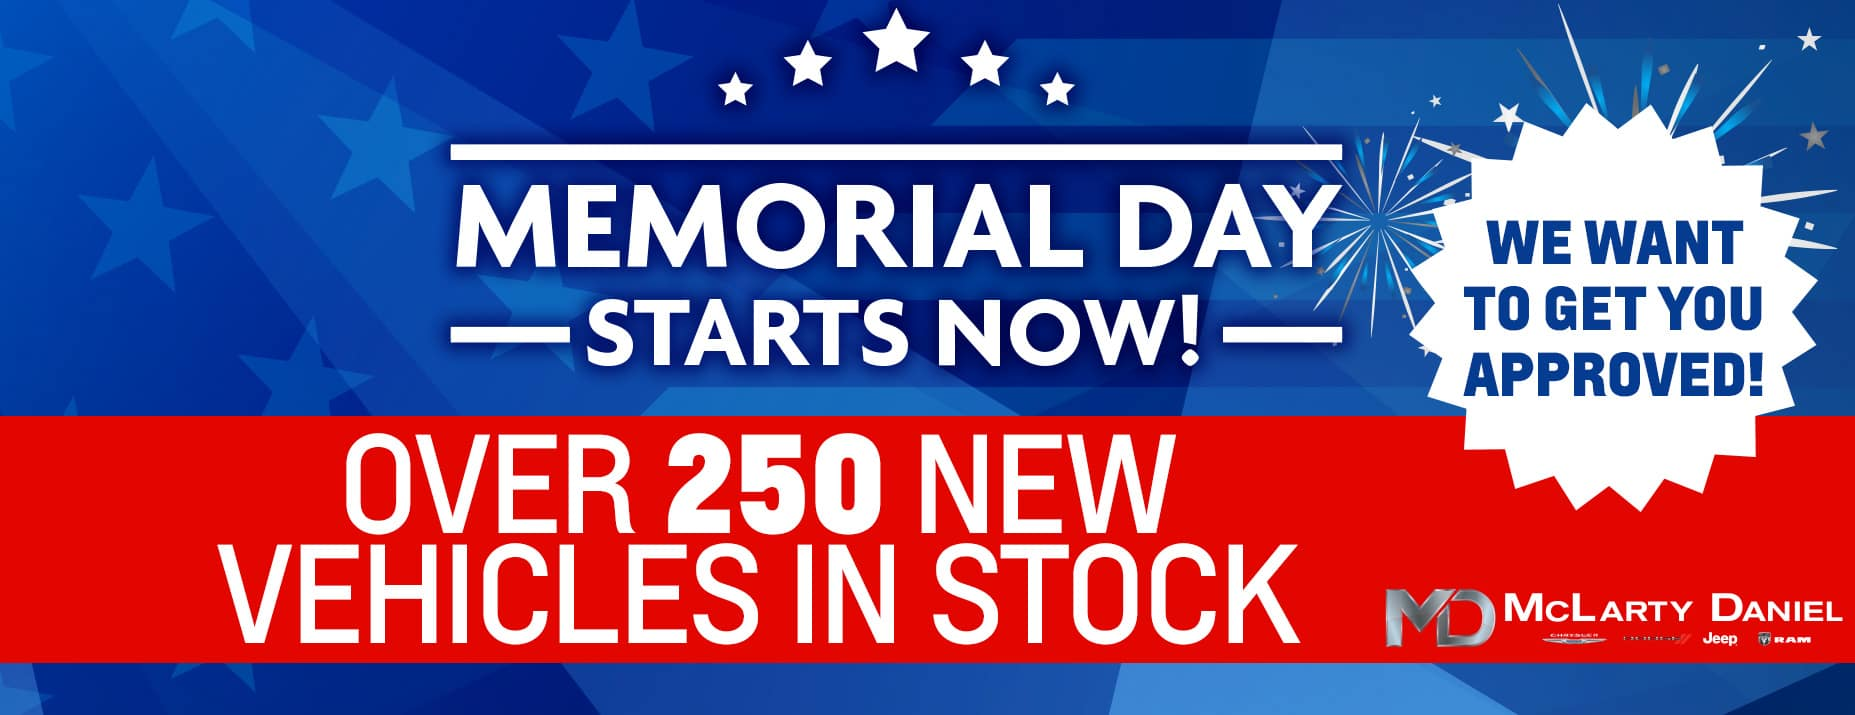 Memorial Day Starts Now!